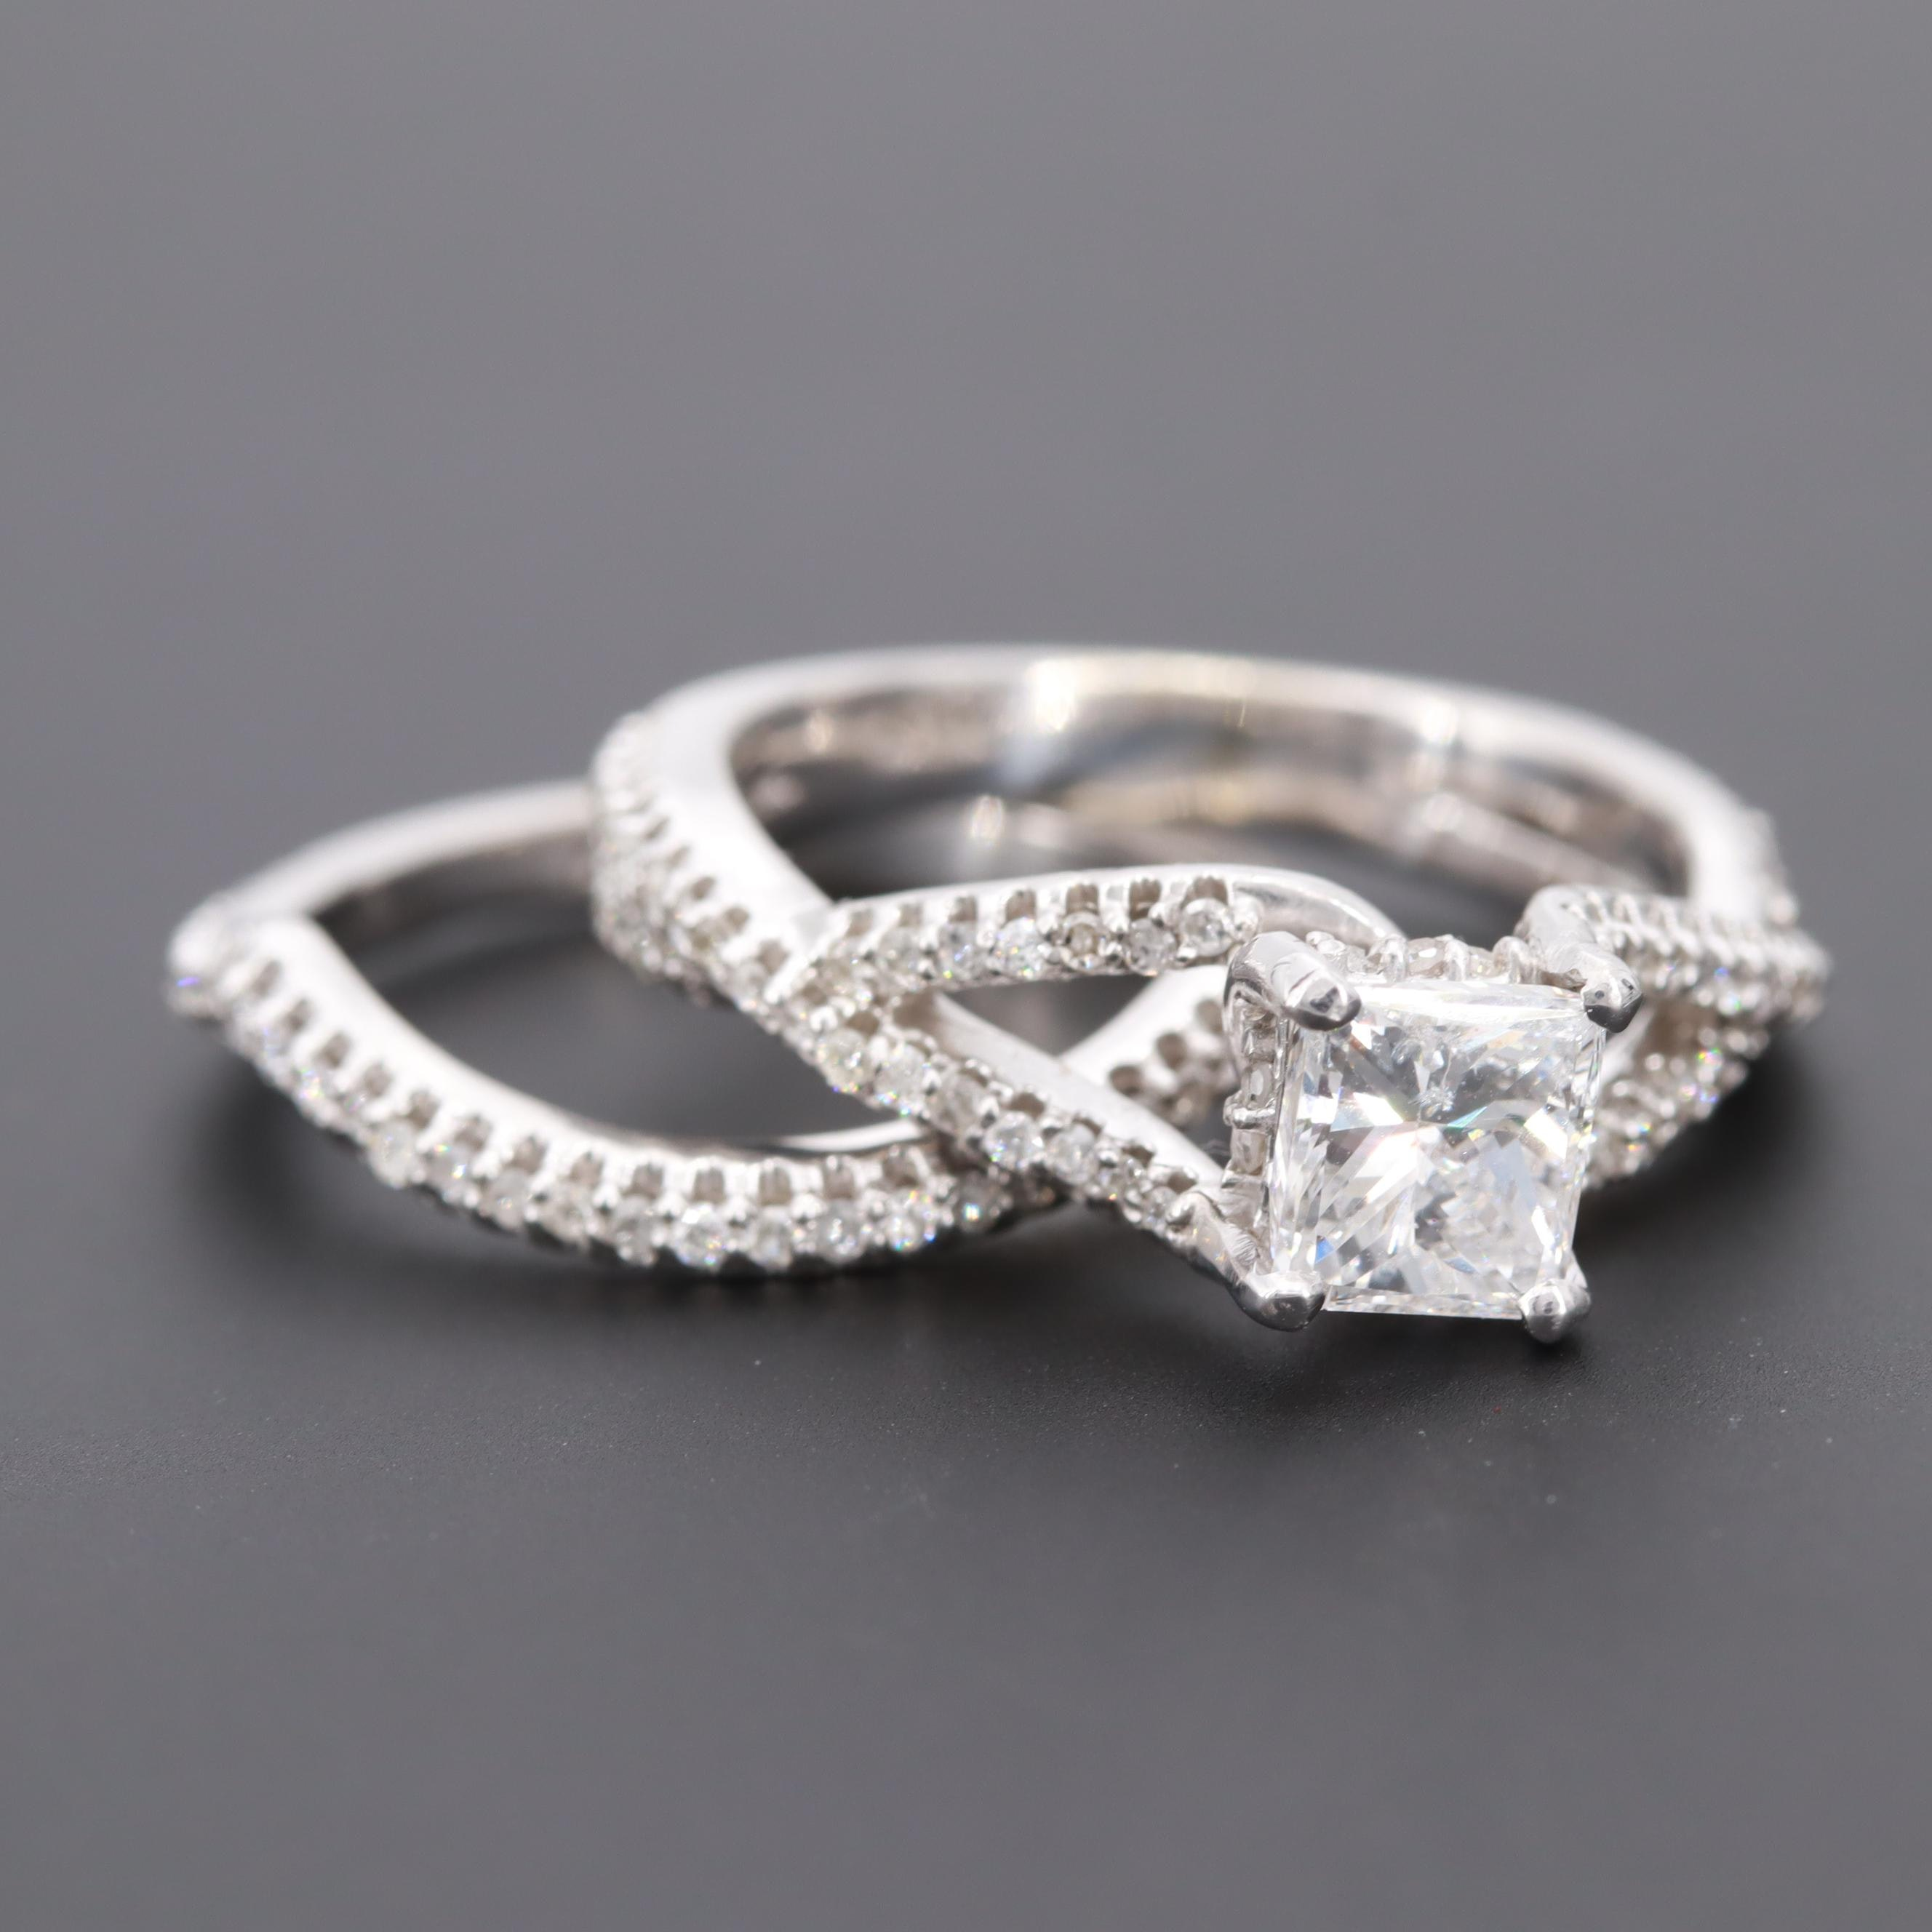 14K White Gold 1.48 CTW Diamond Ring and Shadow Band